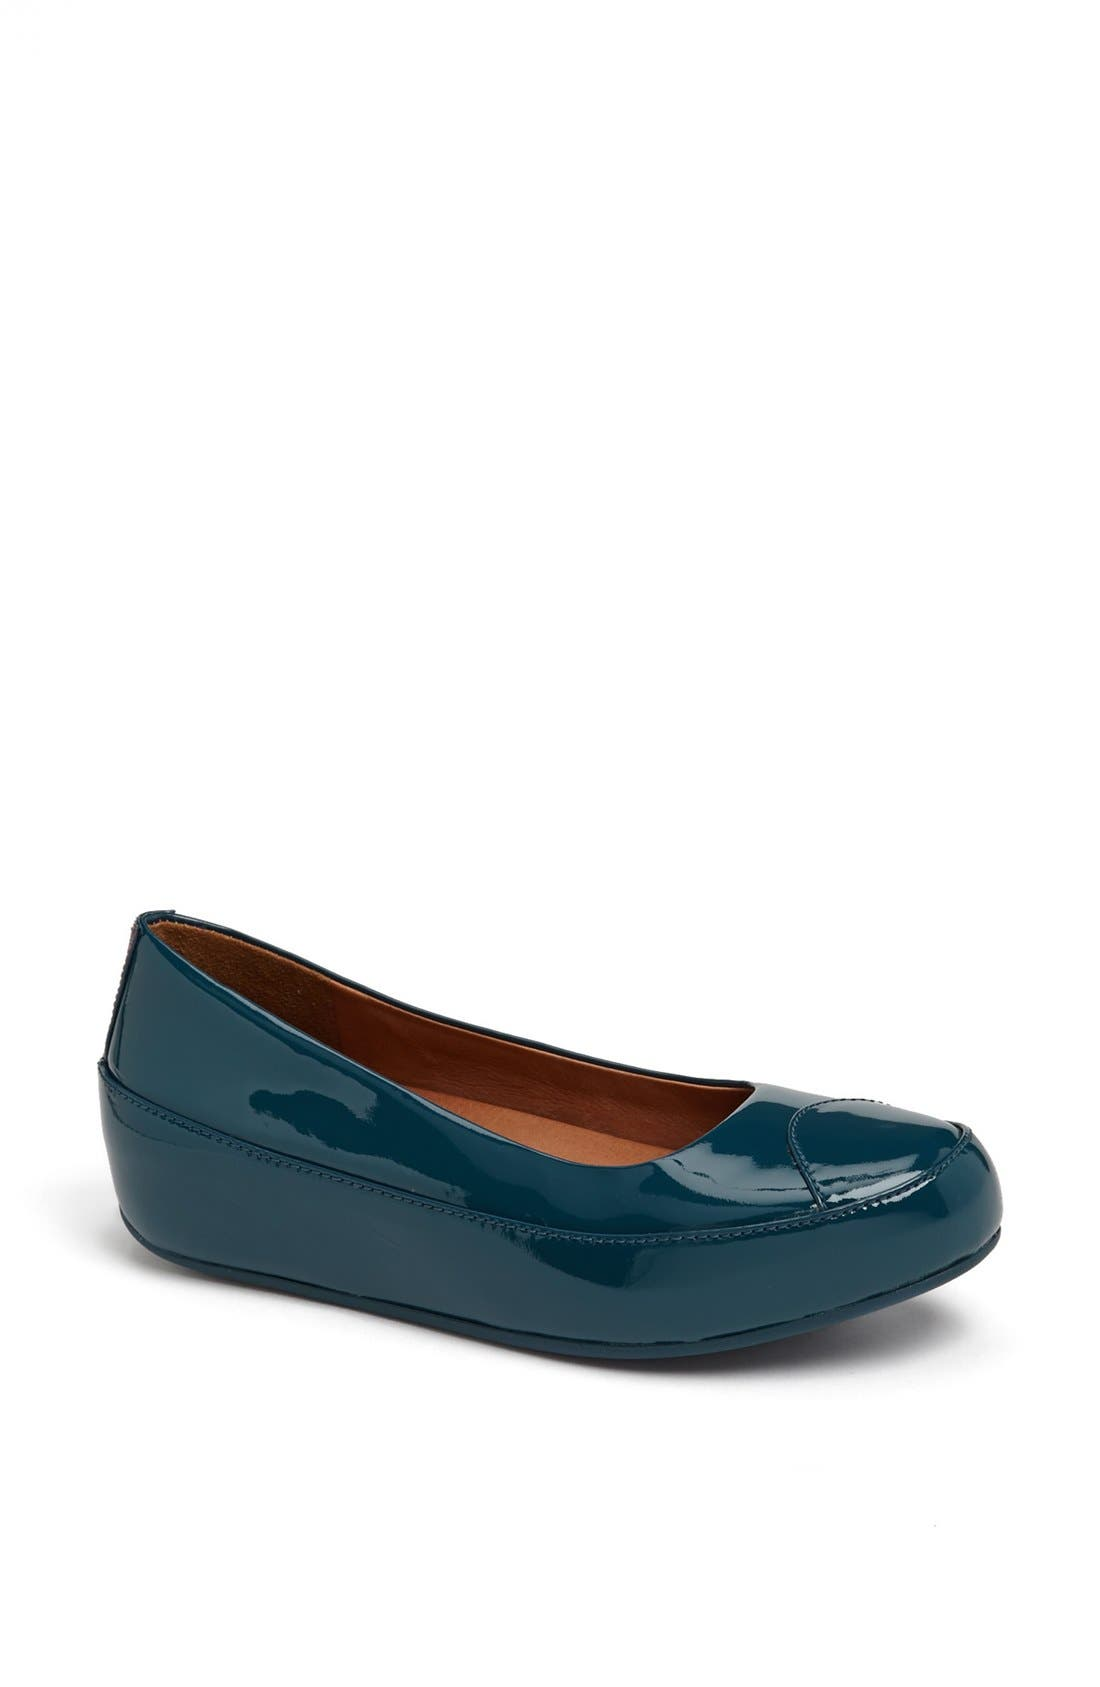 Main Image - FitFlop 'Dué™' Patent Flat